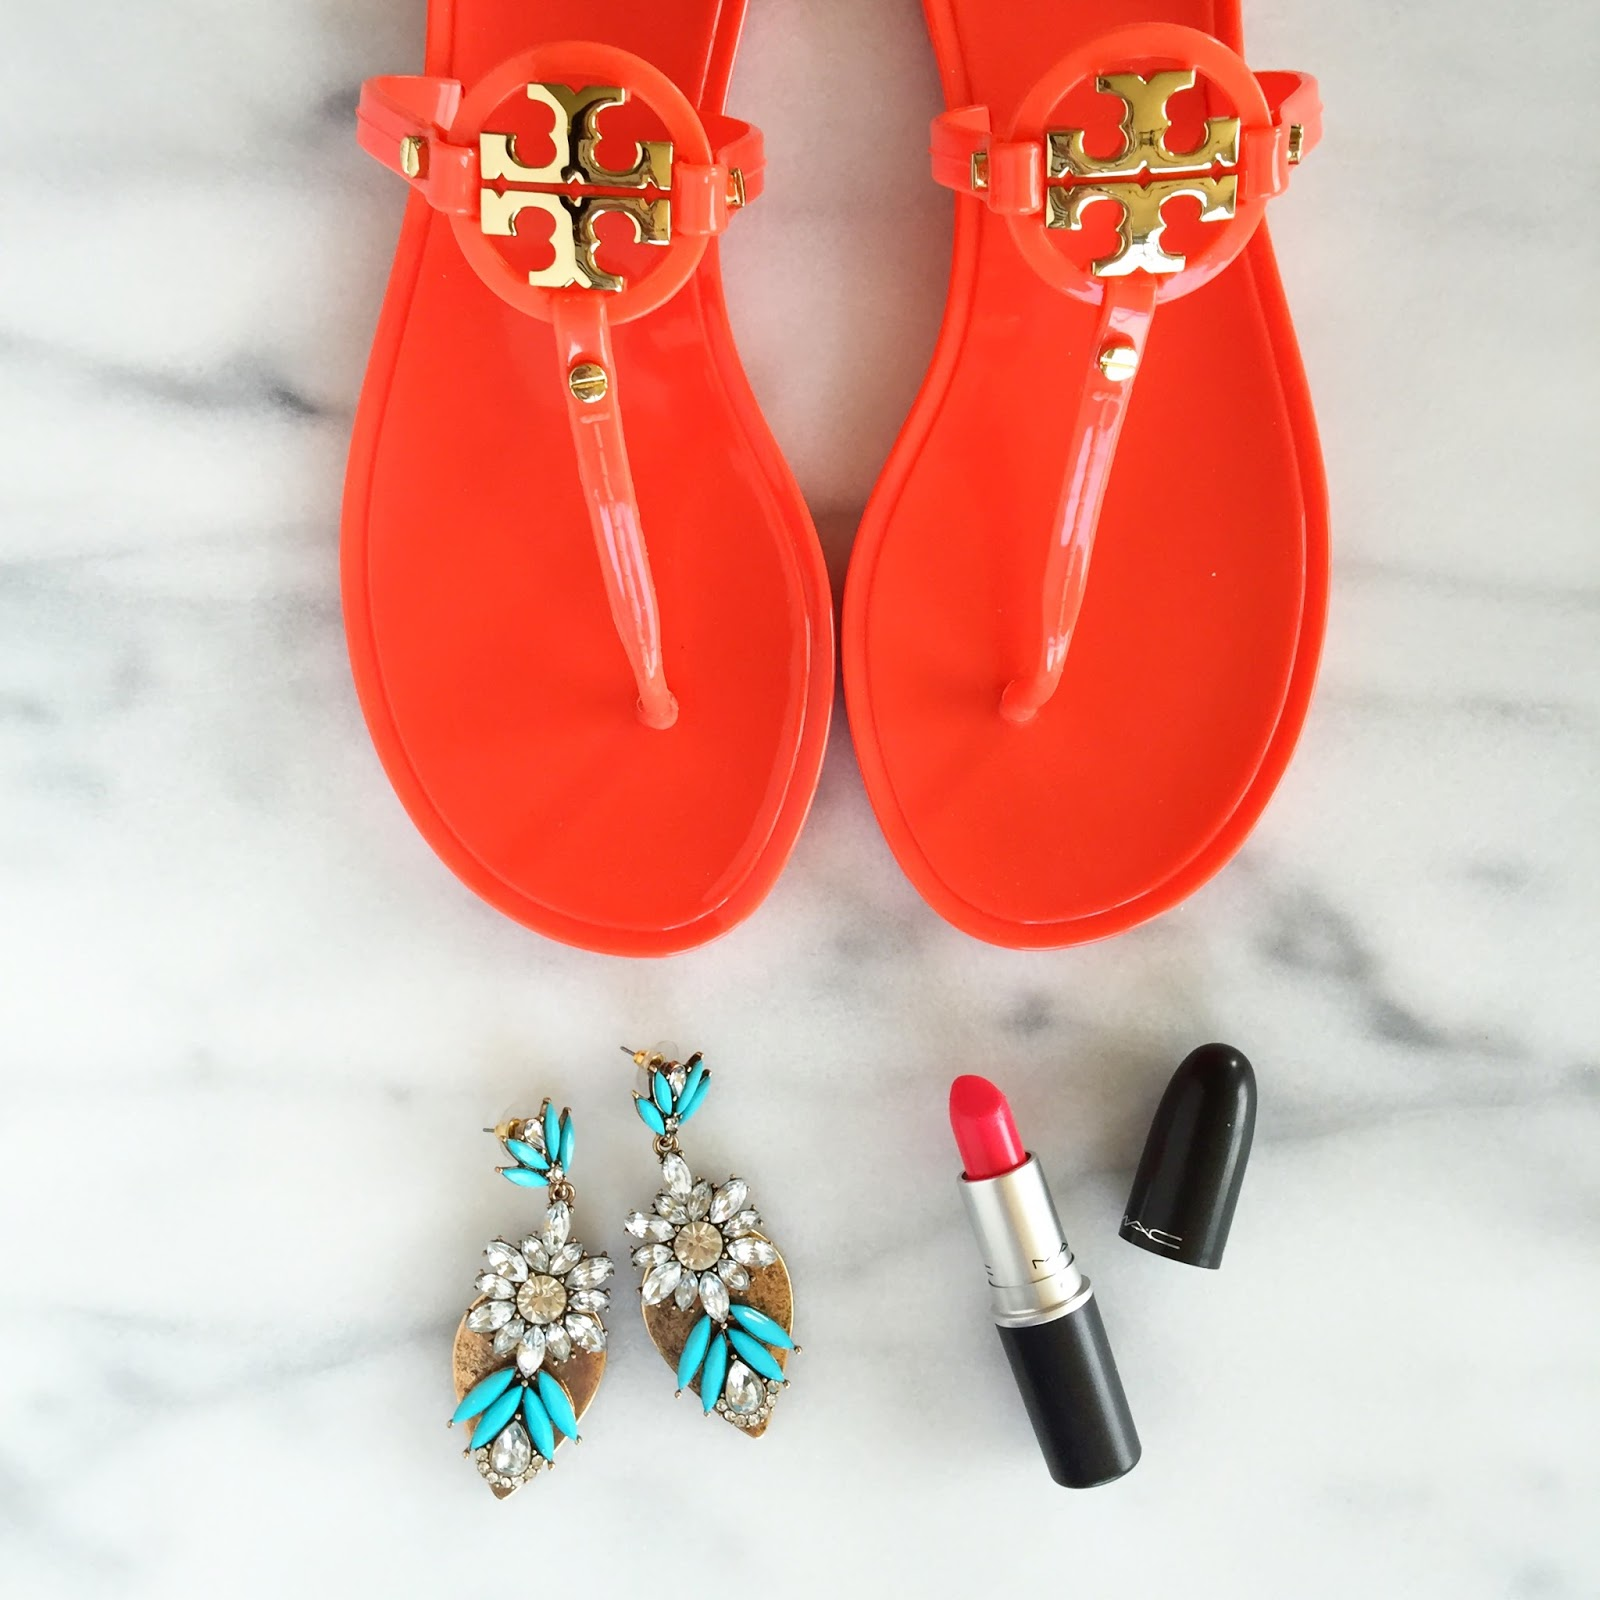 Love the Tory Burch sandals